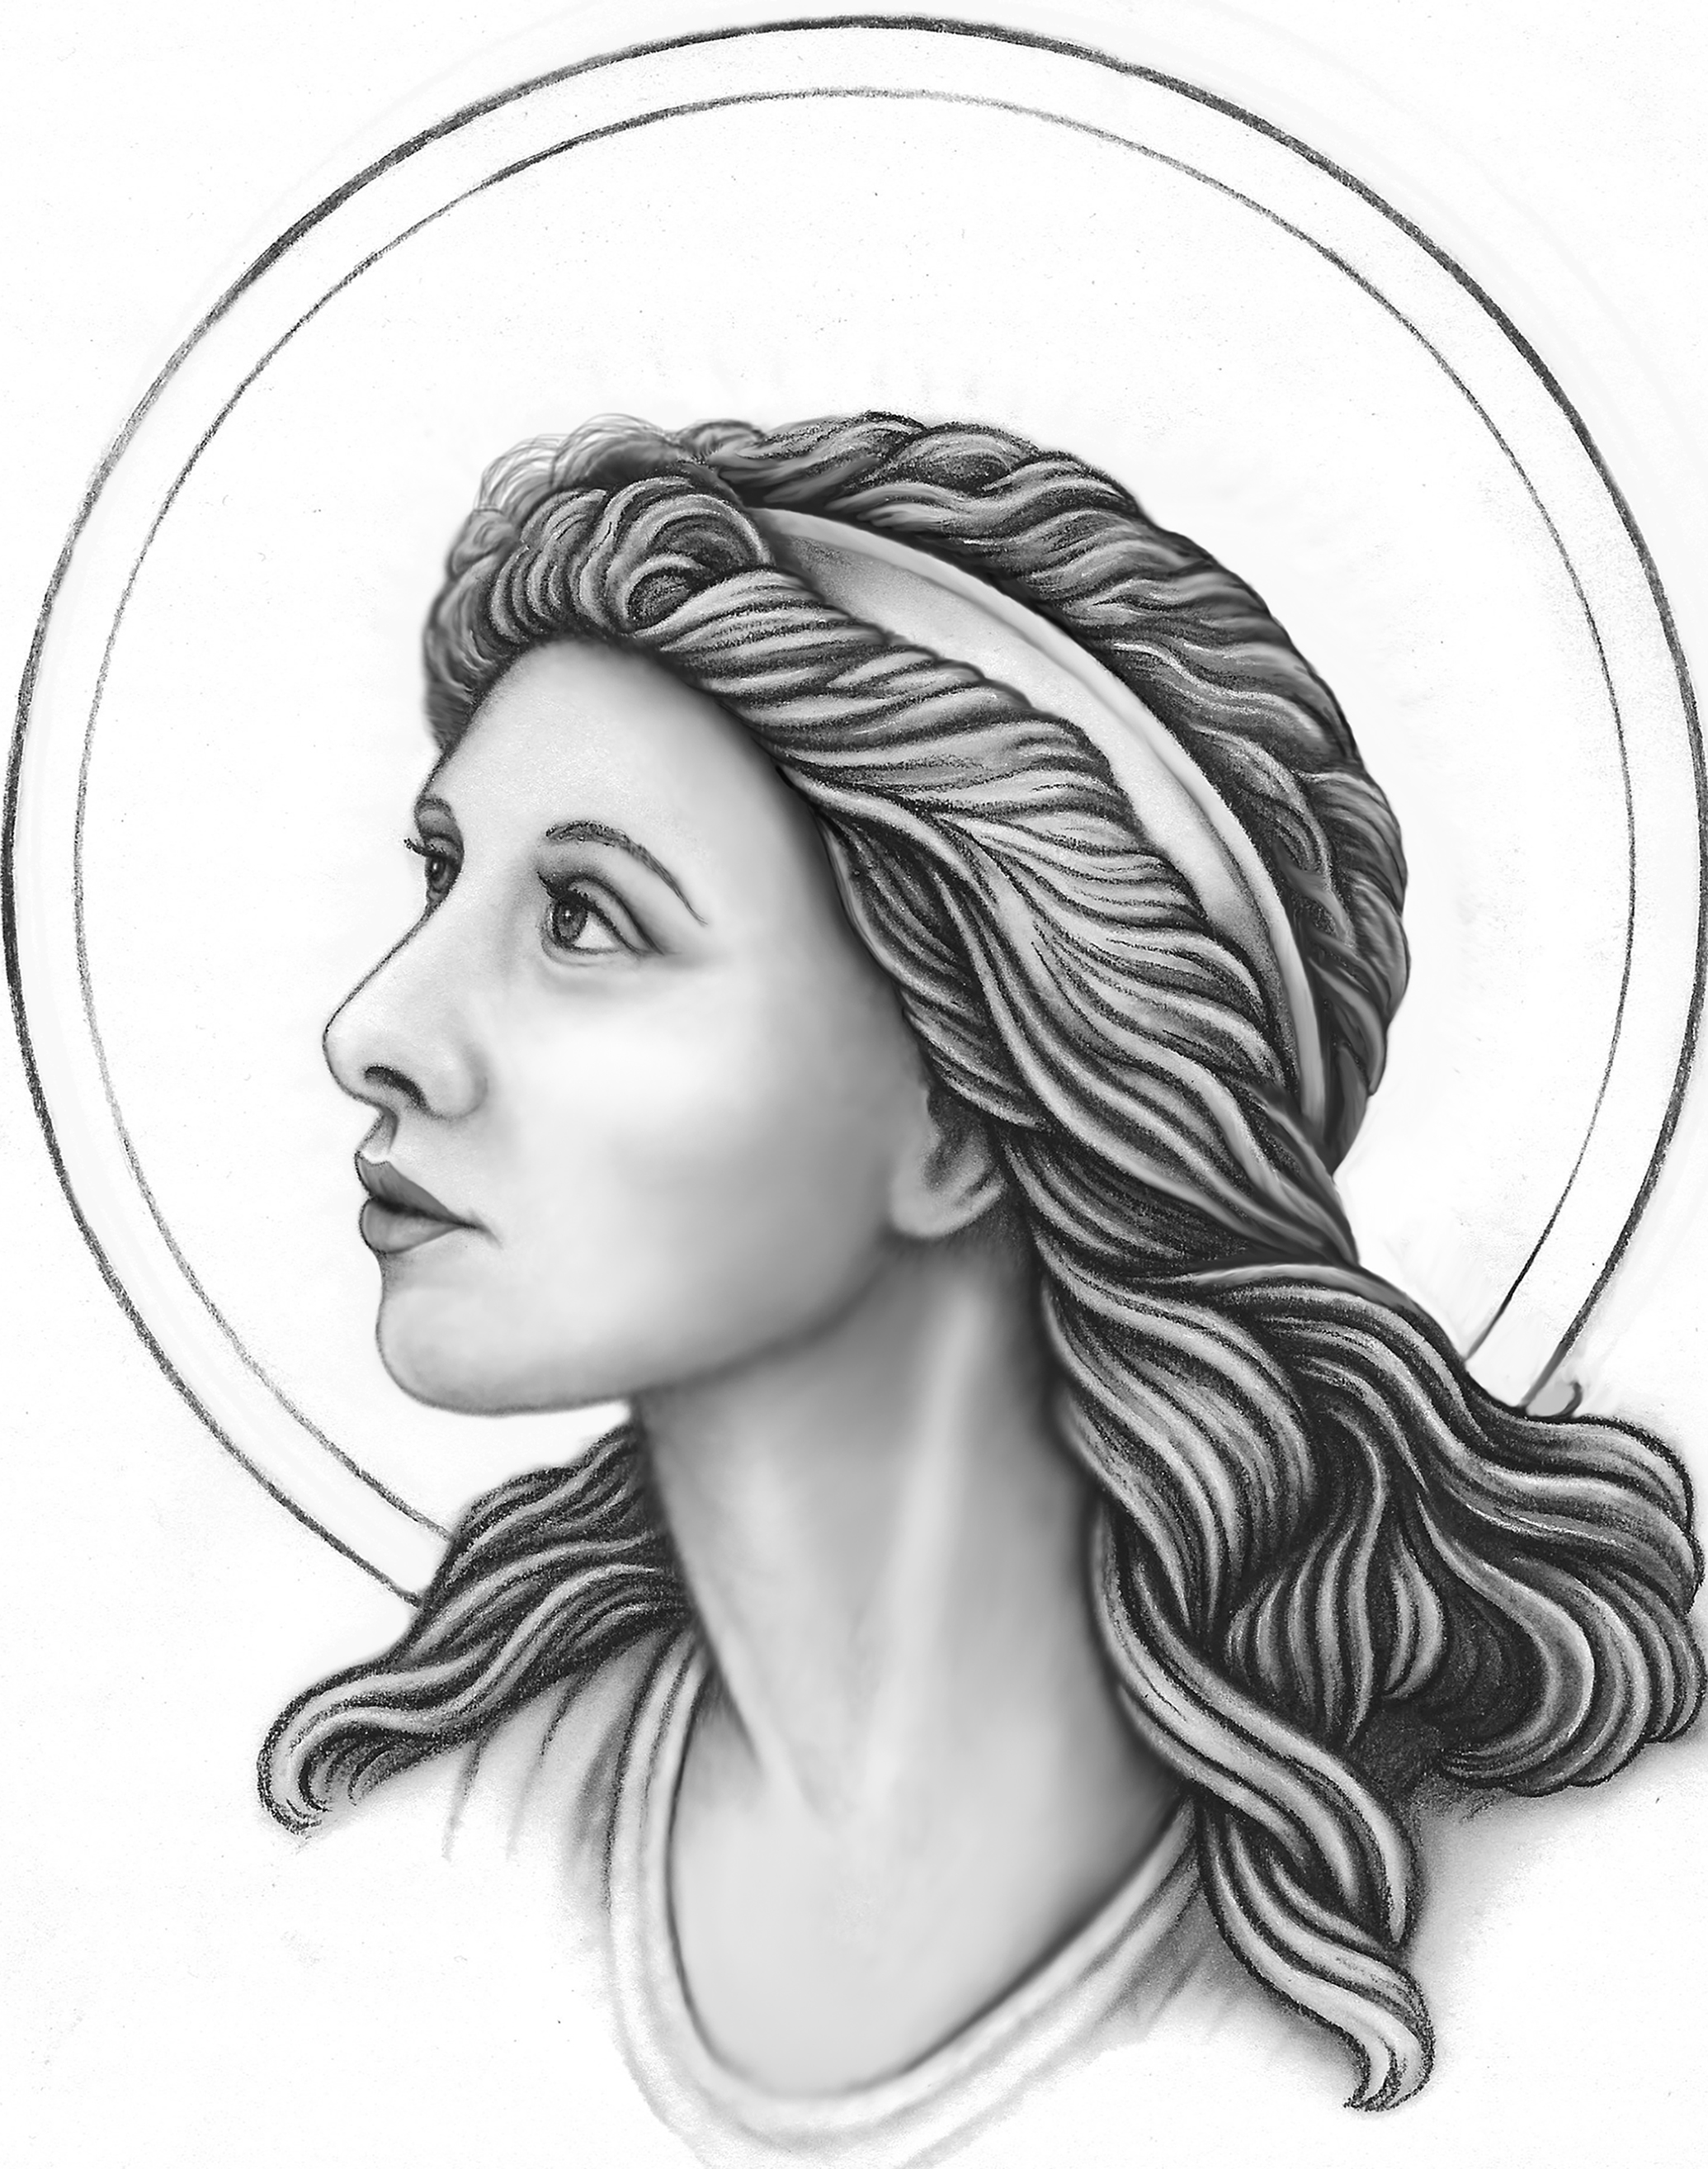 Original charcoal drawing of Mary